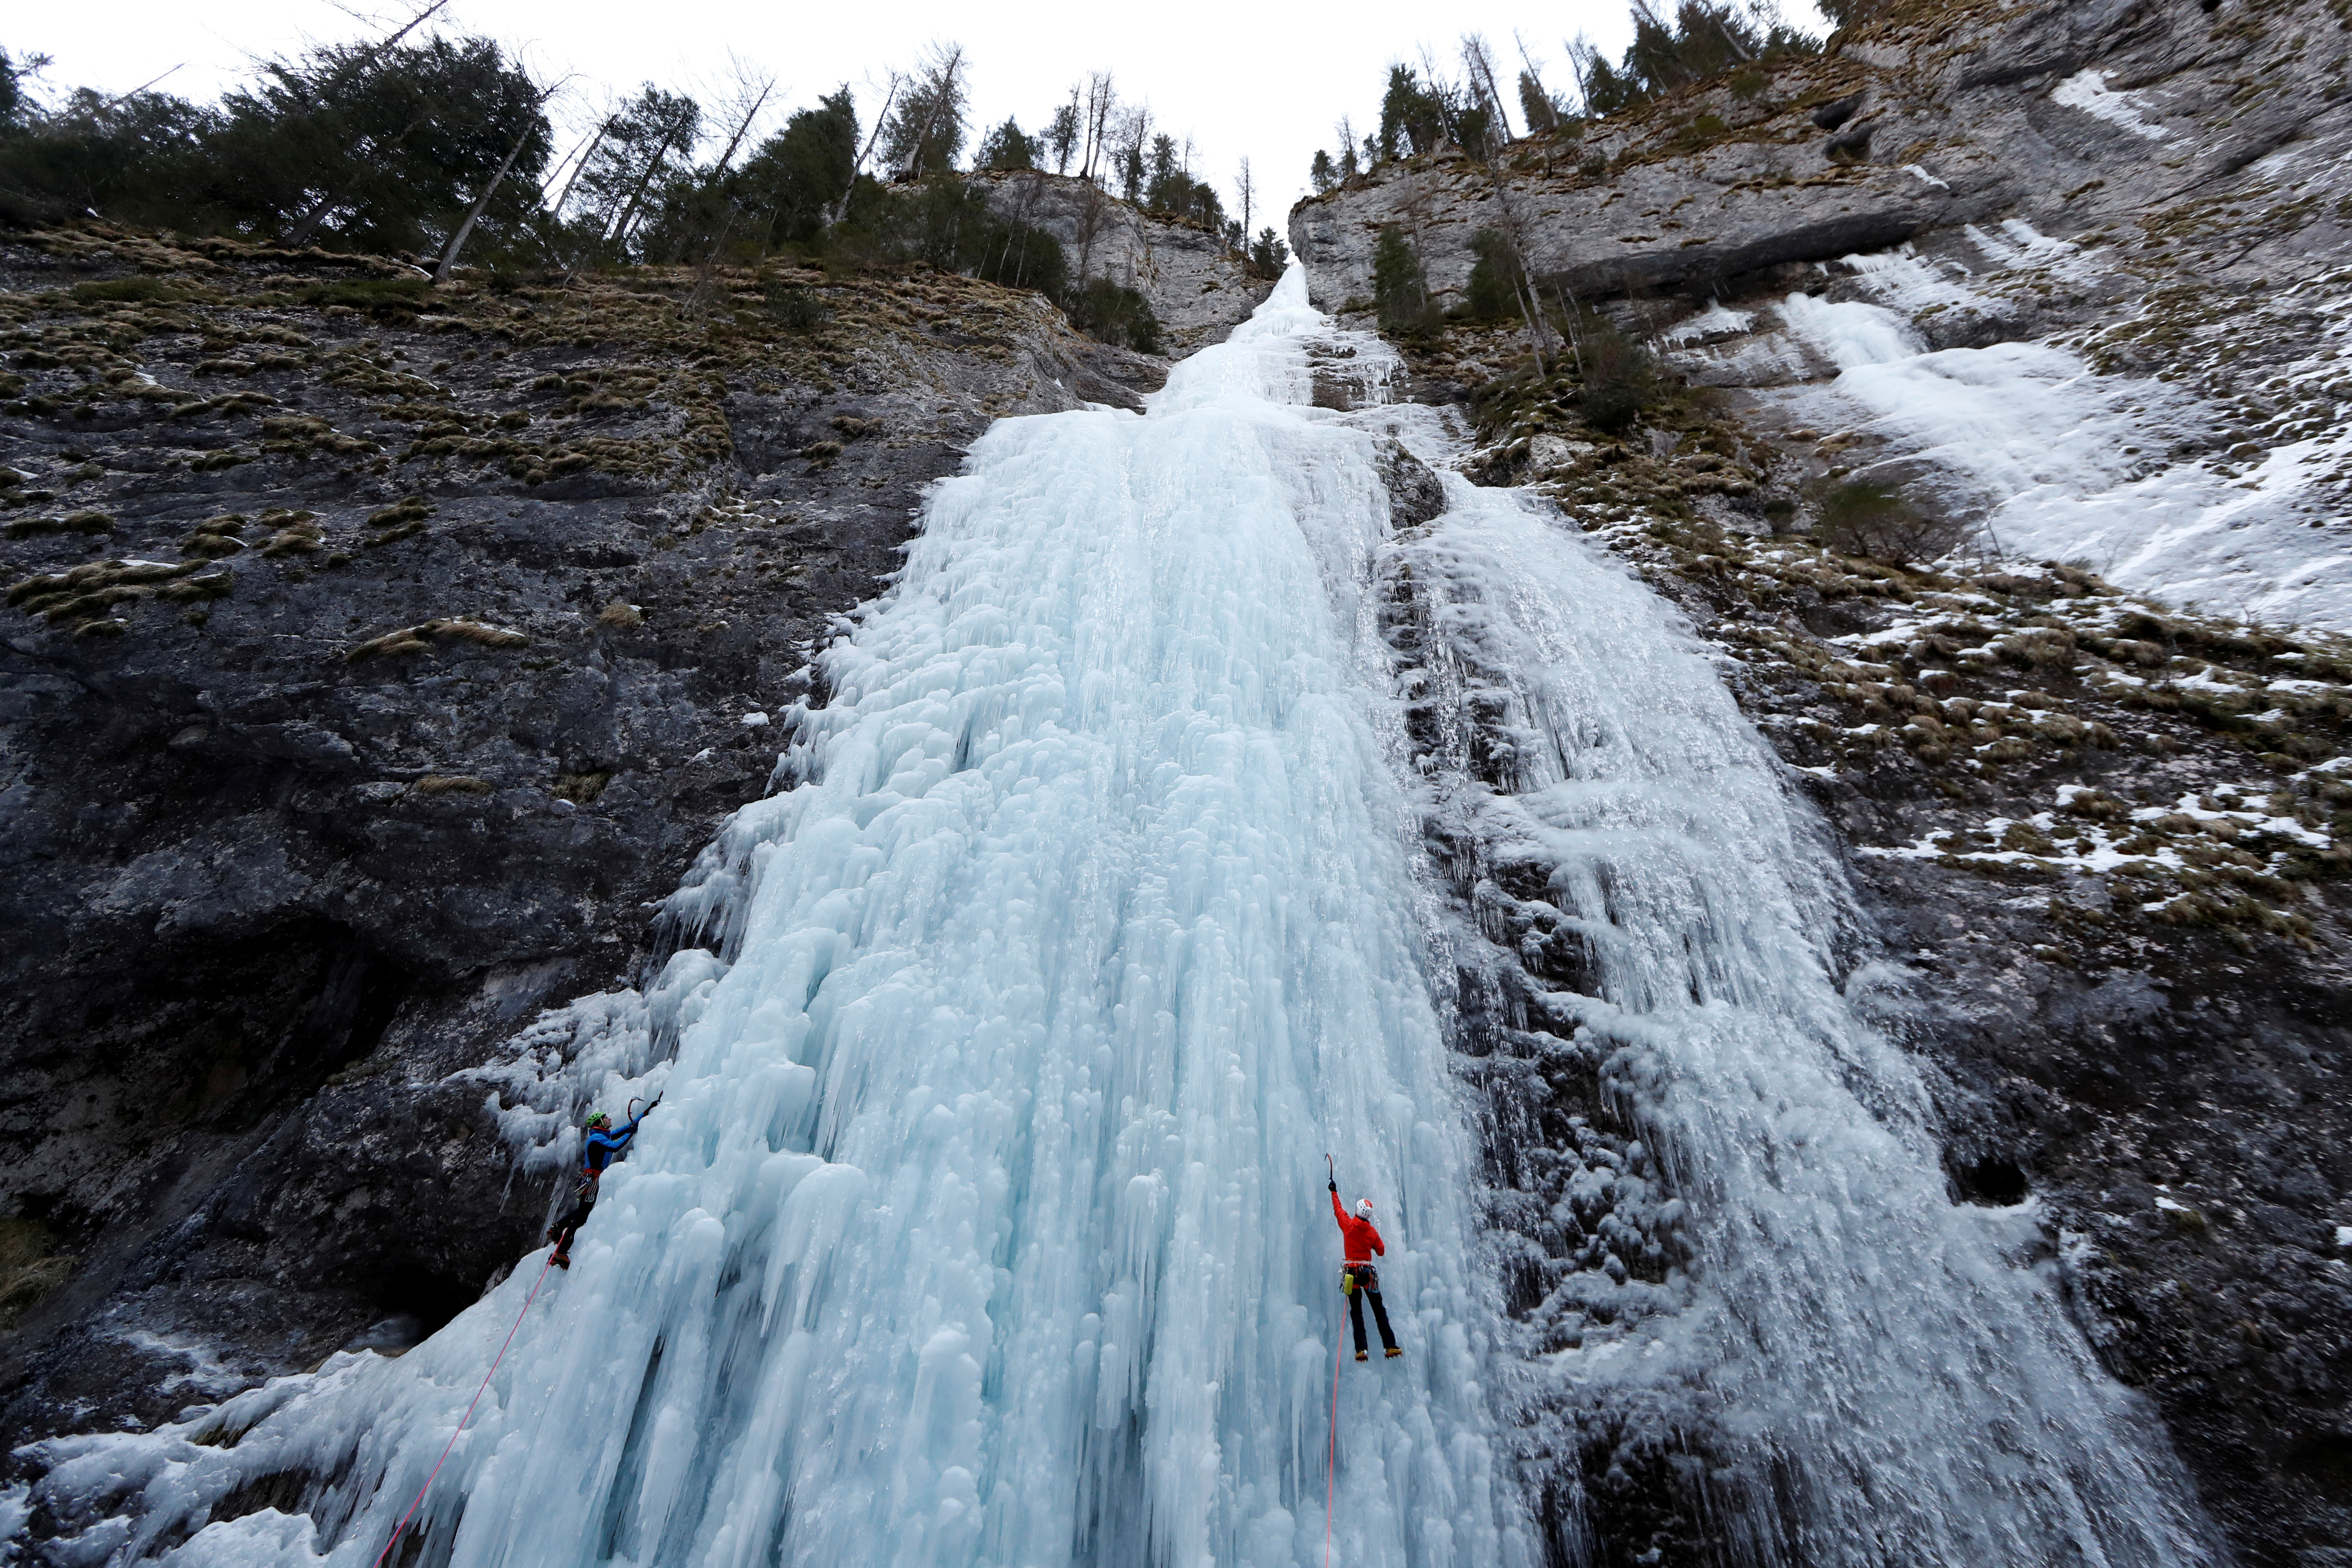 Italian alpine rescuers climb a frozen waterfall in Malga Ciapela, Italy, February 11, 2020. Picture taken  February 11, 2020. Twice a month throughout the year members of the Italian Alpine Rescue Service (CNSAS), many of whom are volunteers, gather for avalanche training 2,000 metres up mountains in the Dolomites. The Italian Alps are heavily affected by climate change with a constant temperature increase and more extreme weather fronts, resulting in shrinking glaciers and the risk of avalanches becoming more common. REUTERS/Yara Nardi